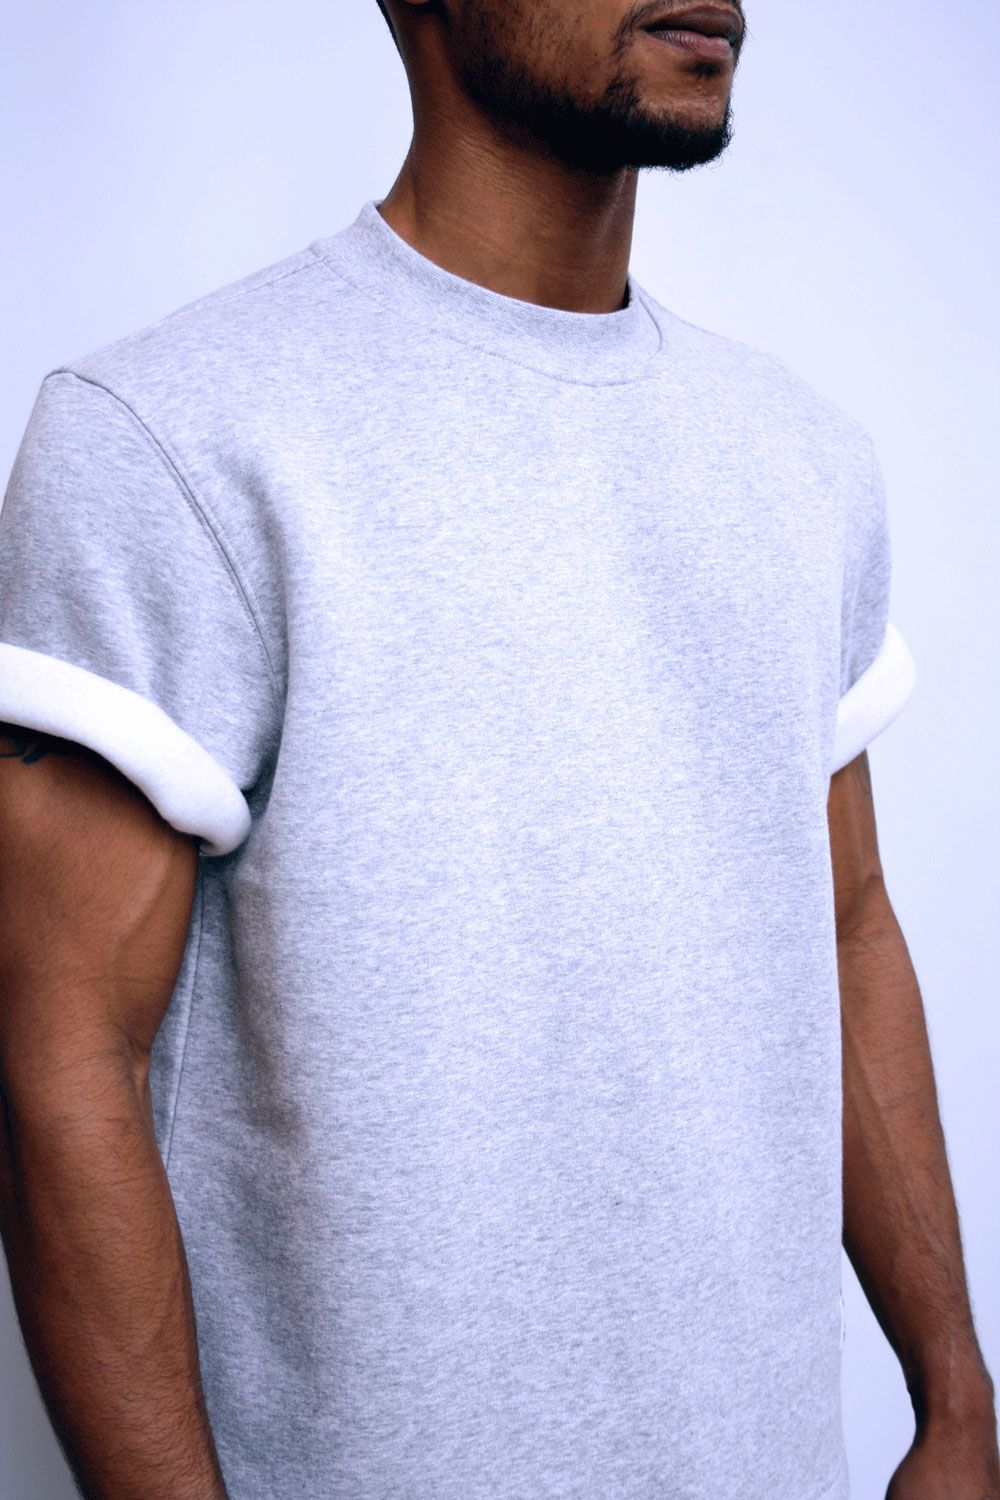 Black t shirt rolled up sleeves - Minimal Jersey Kanye West Fashion Modern Rolled Up Tee